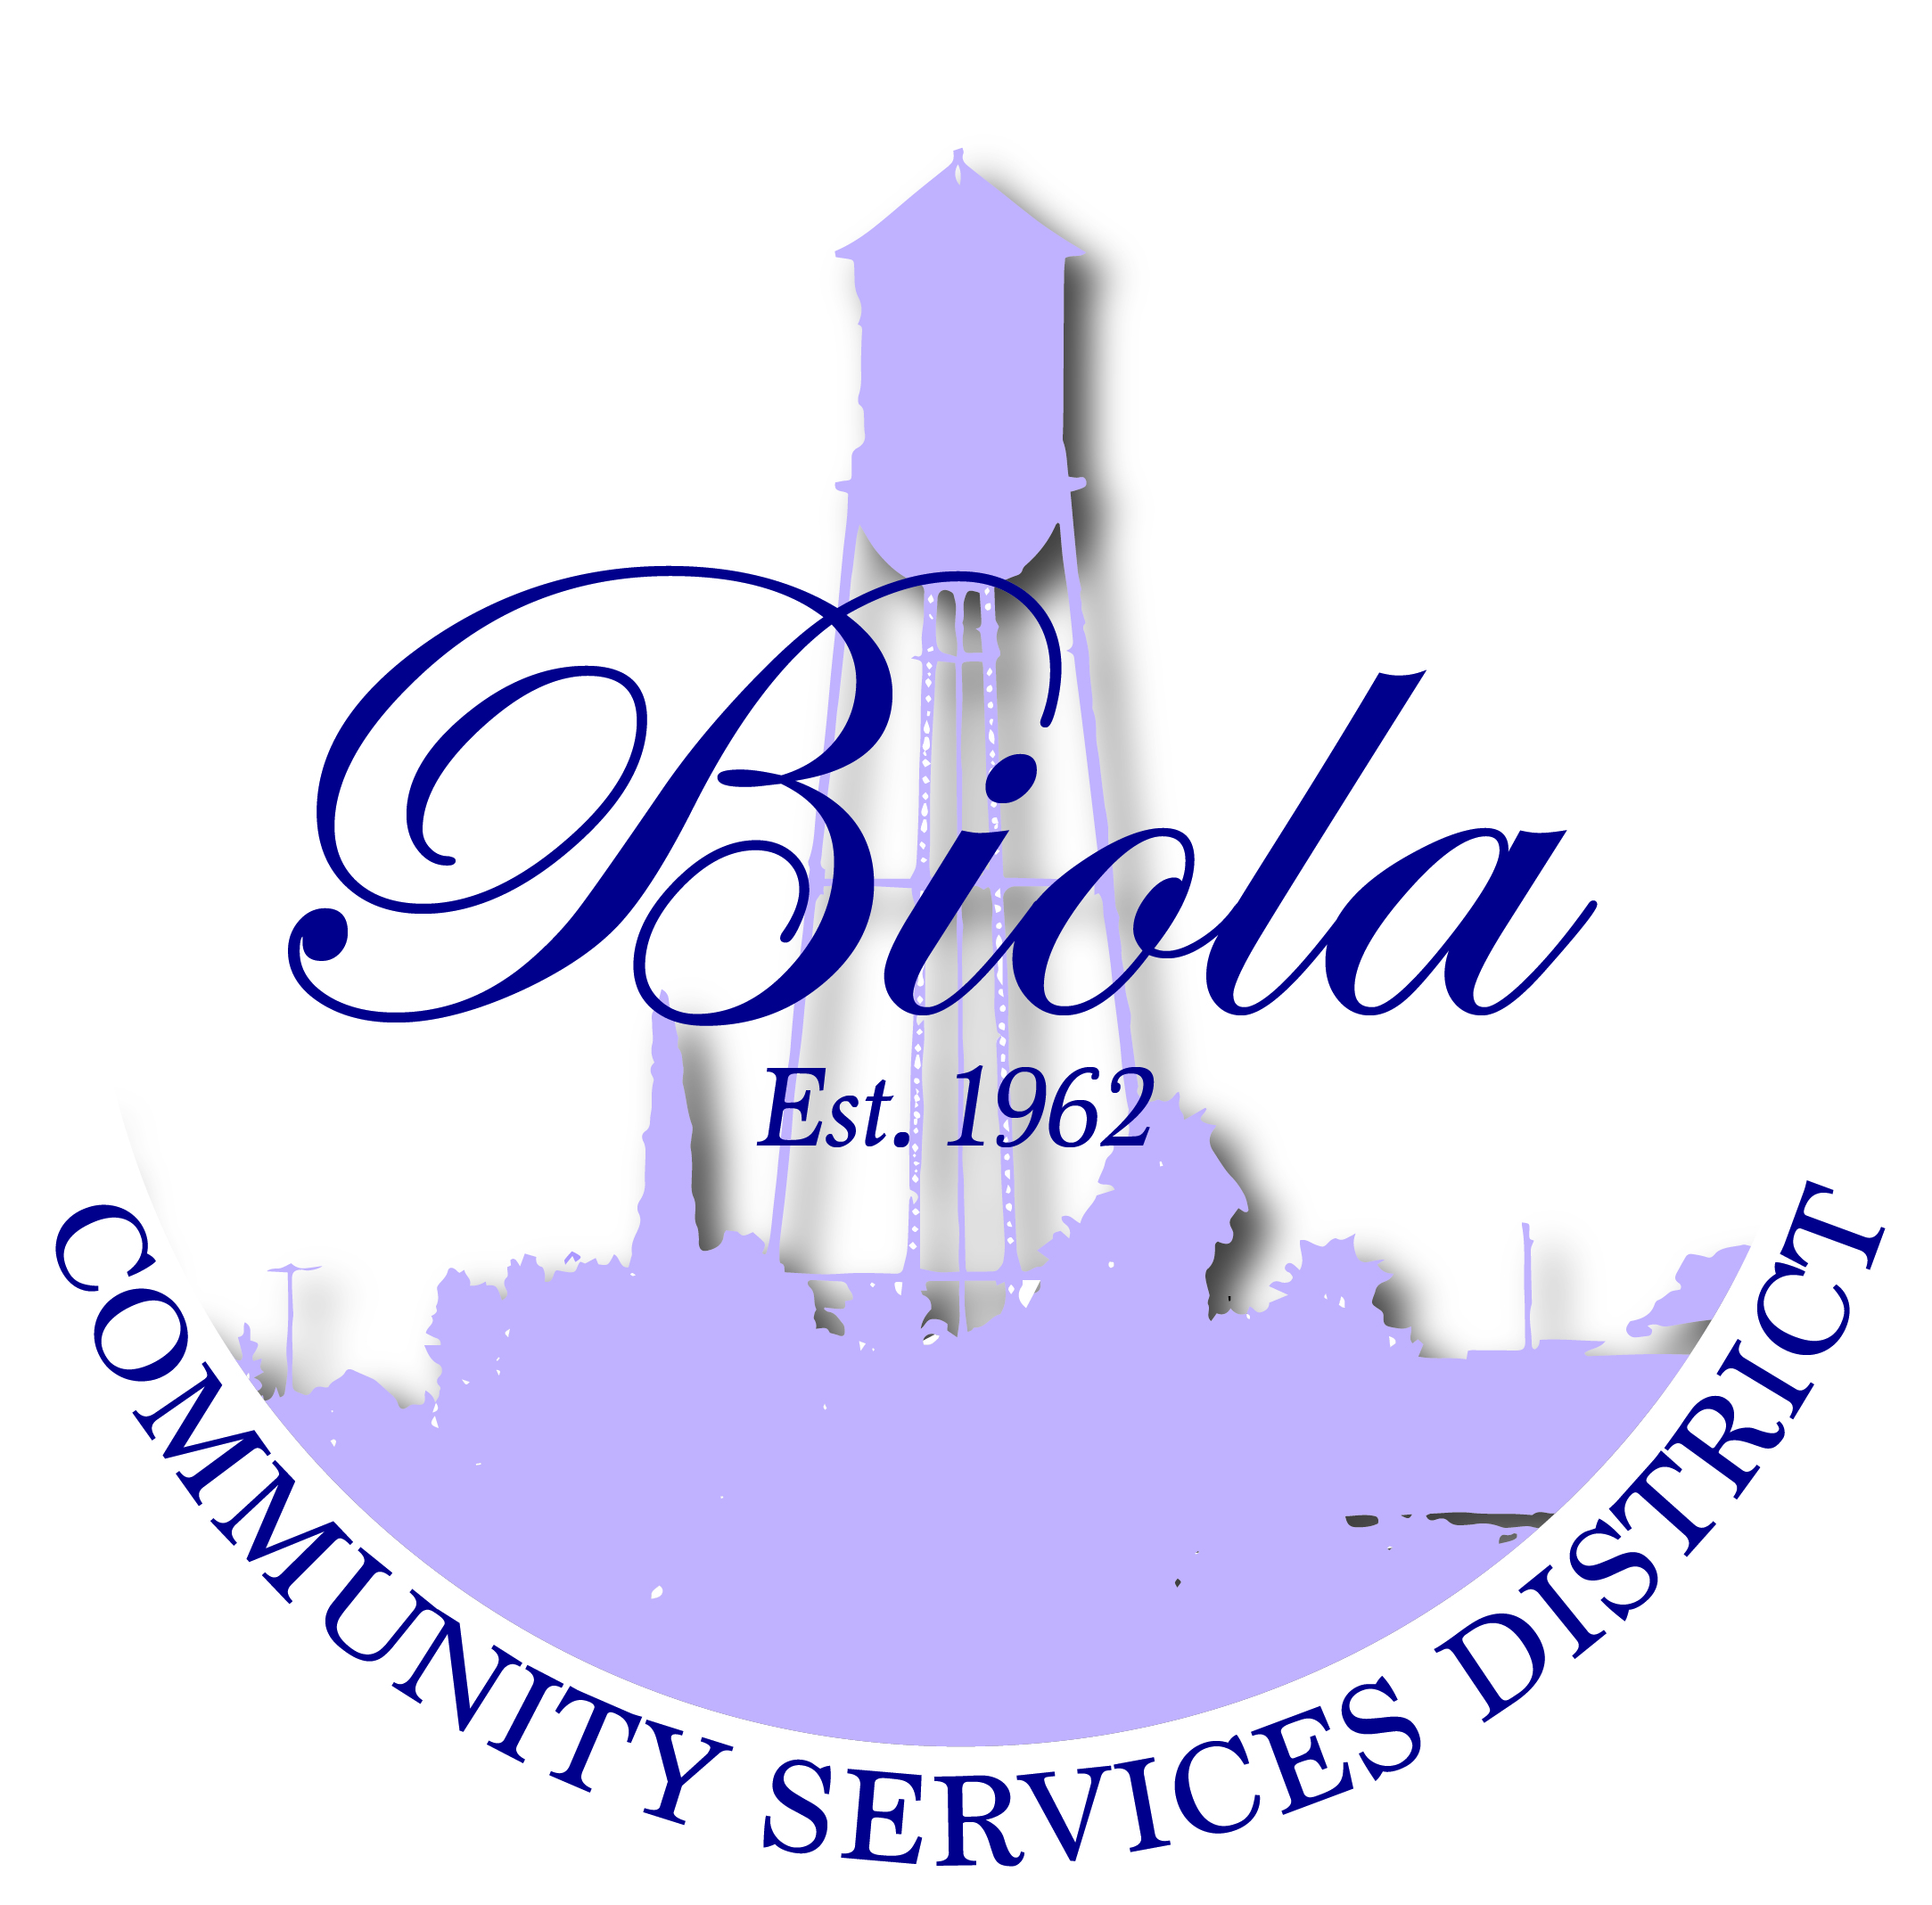 Biola Community Services District